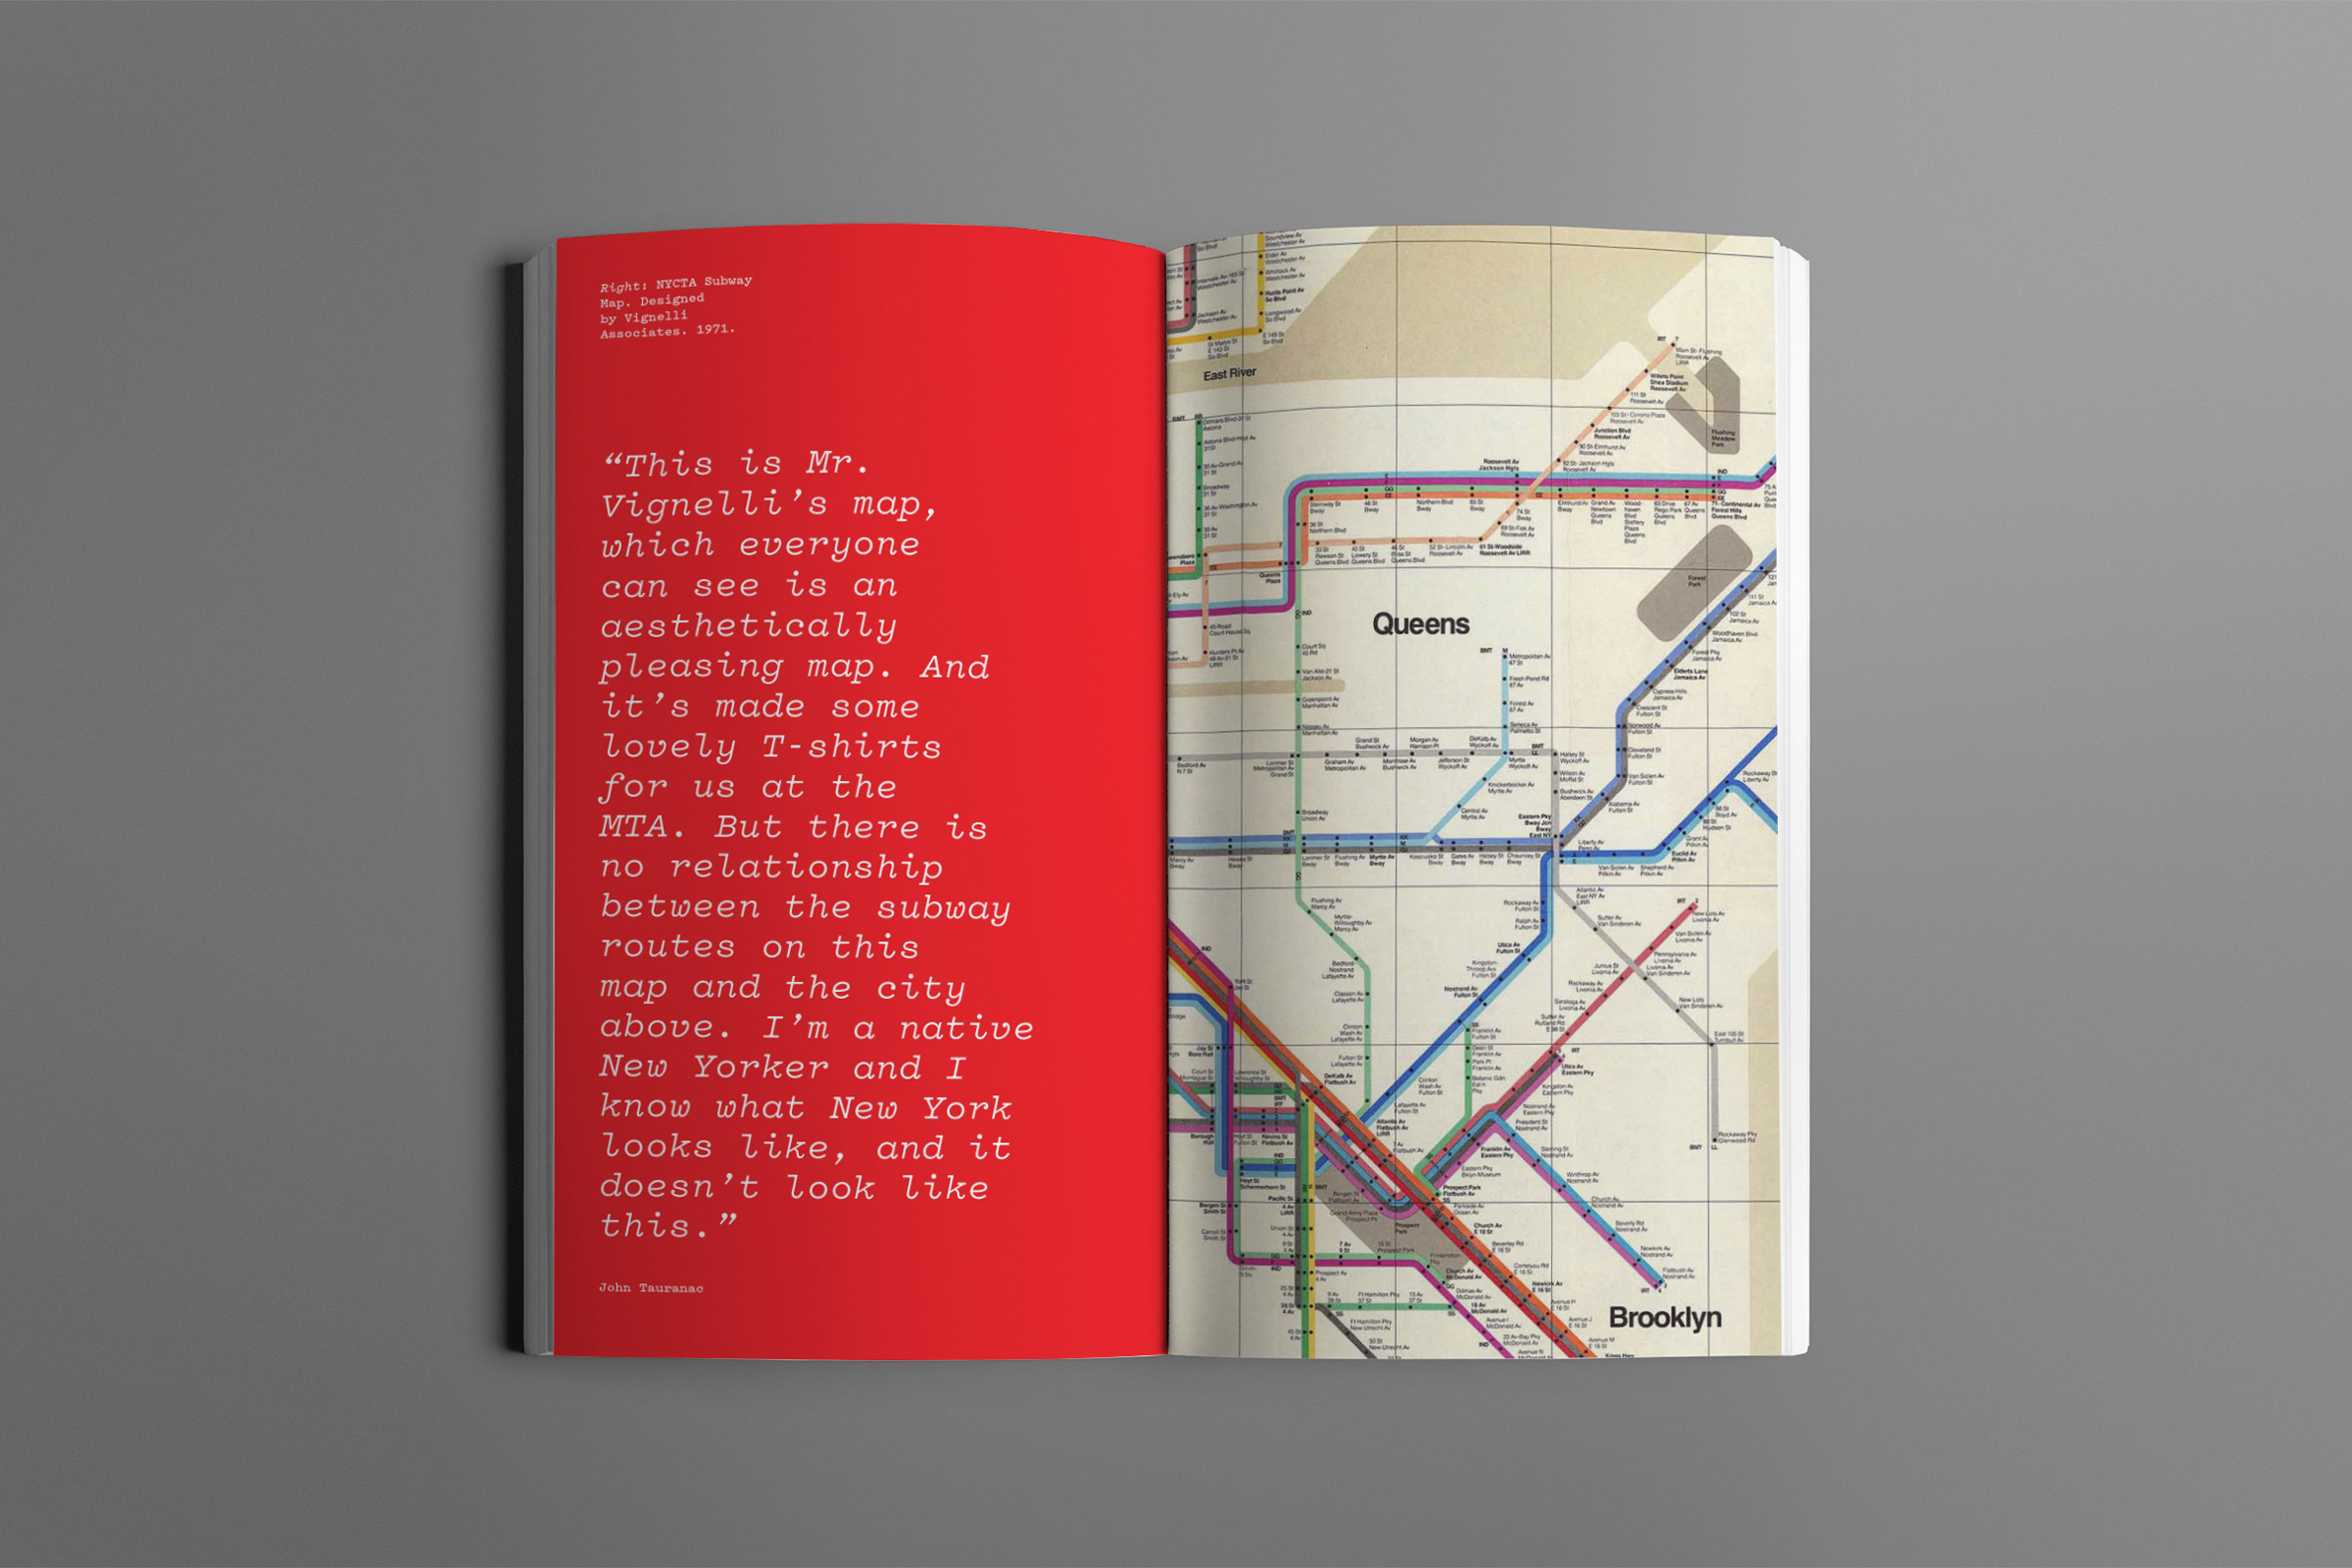 Book on the New York subway map design by Gary Hustwit